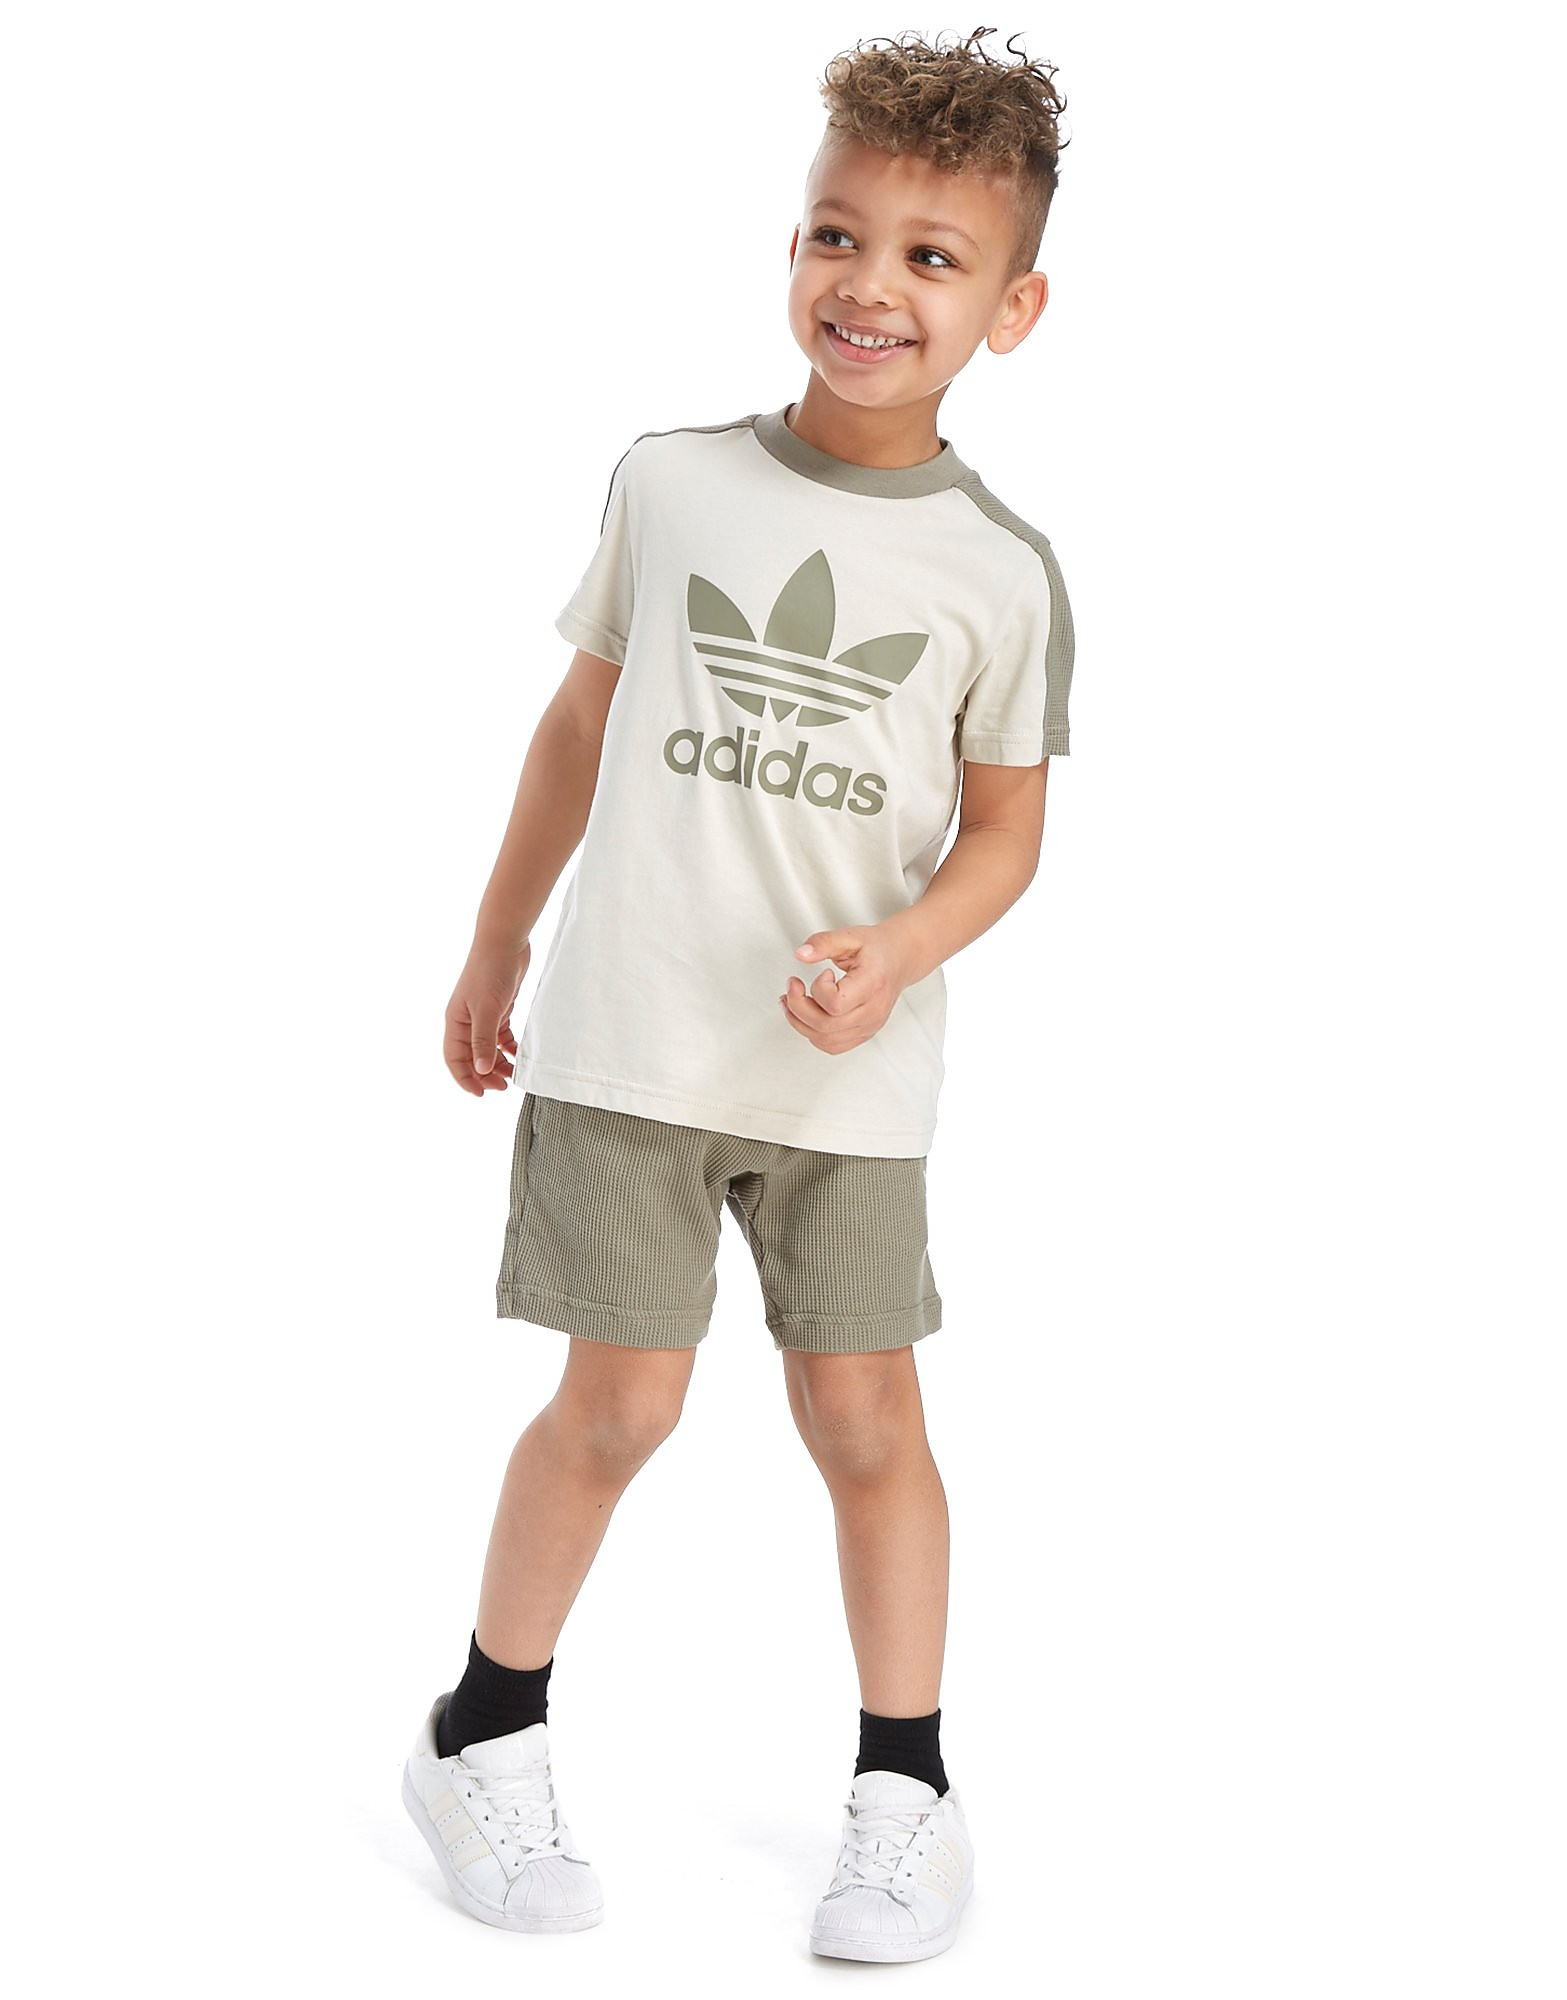 adidas Originals MOA T-Shirt & Shorts Set Children